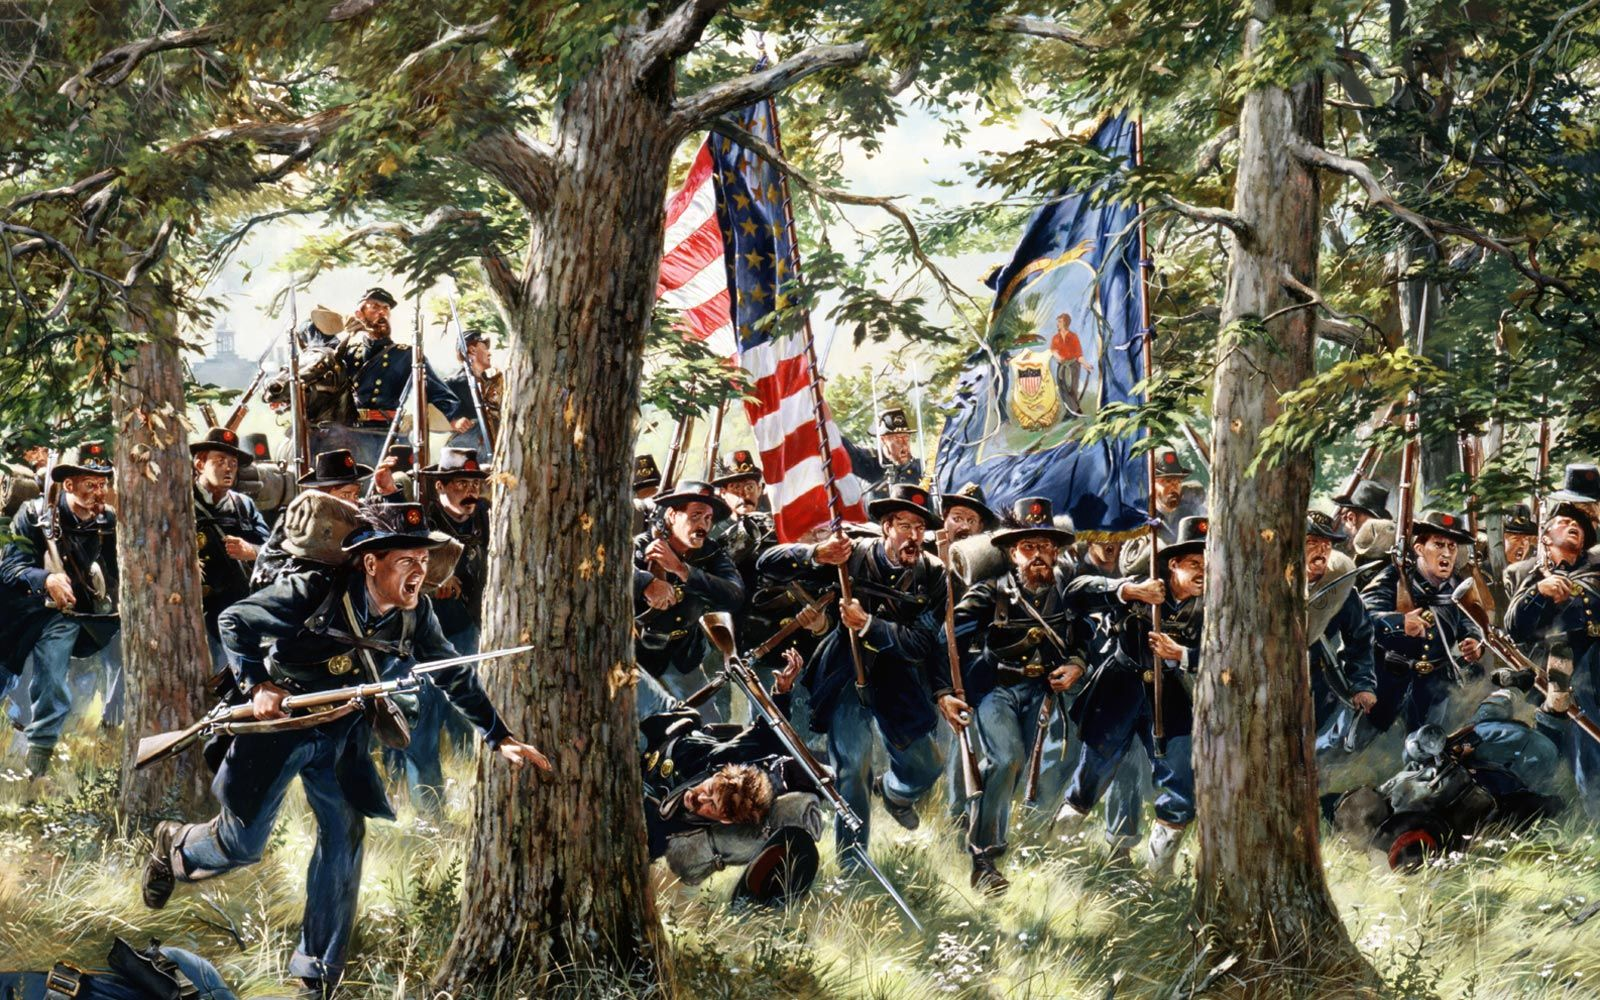 For God Sake Foward Jpg 1600 1000 In This Painting By Don Troiani Soldiers Of The 2nd Wisconsin Infantry Civil War Art Civil War Artwork American Civil War